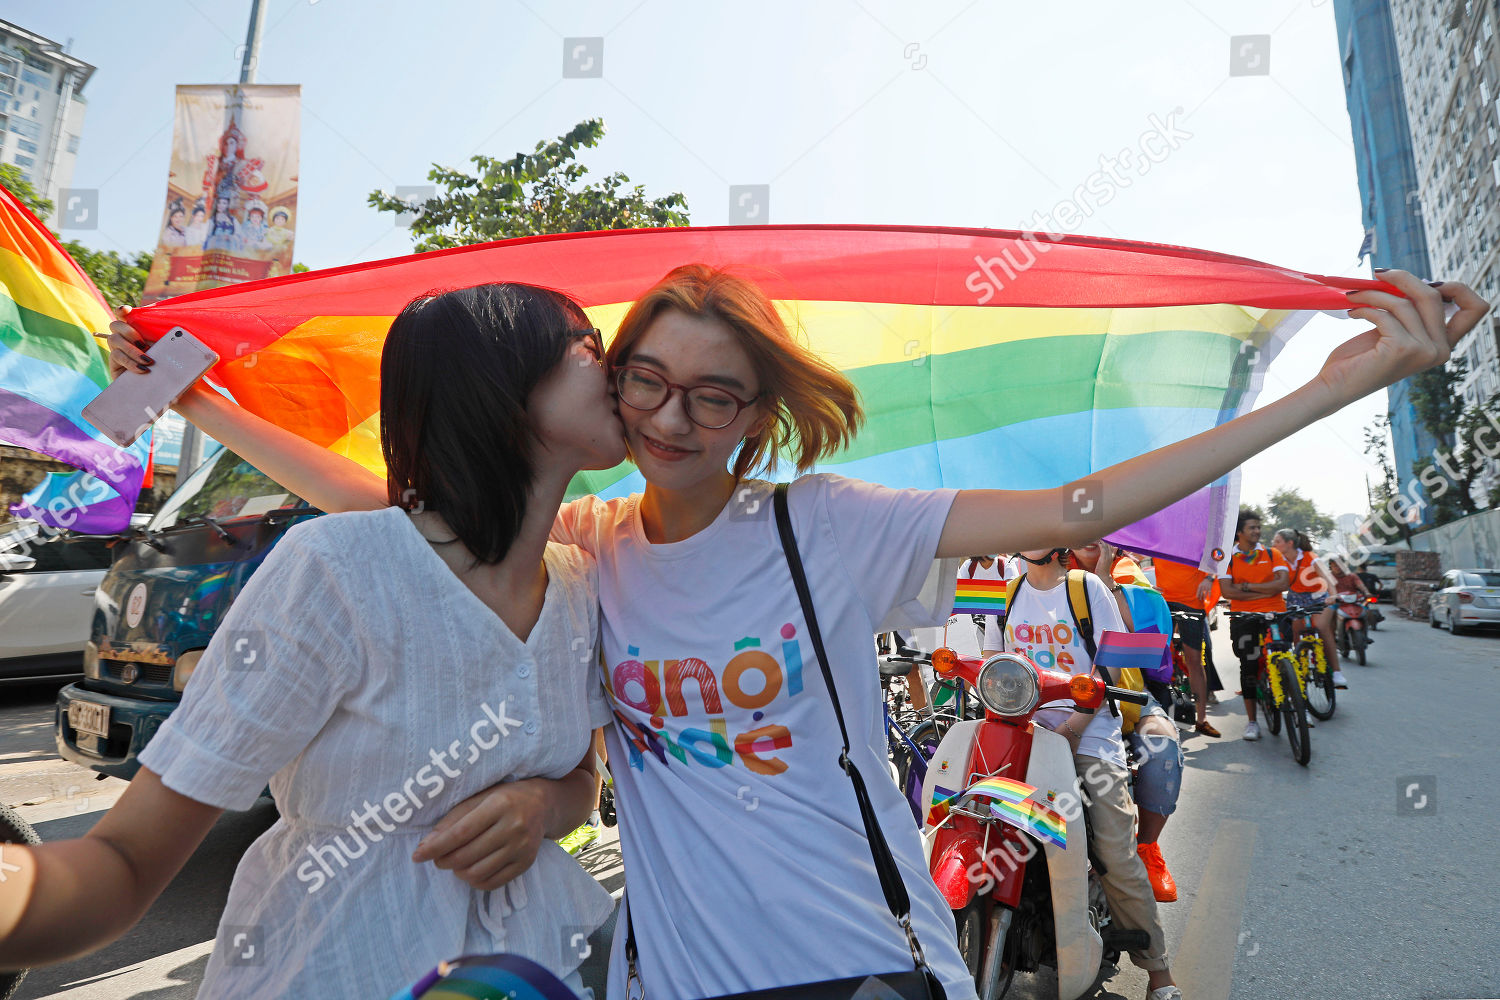 Two women kiss each other they take Editorial Stock Photo - Stock Image |  Shutterstock